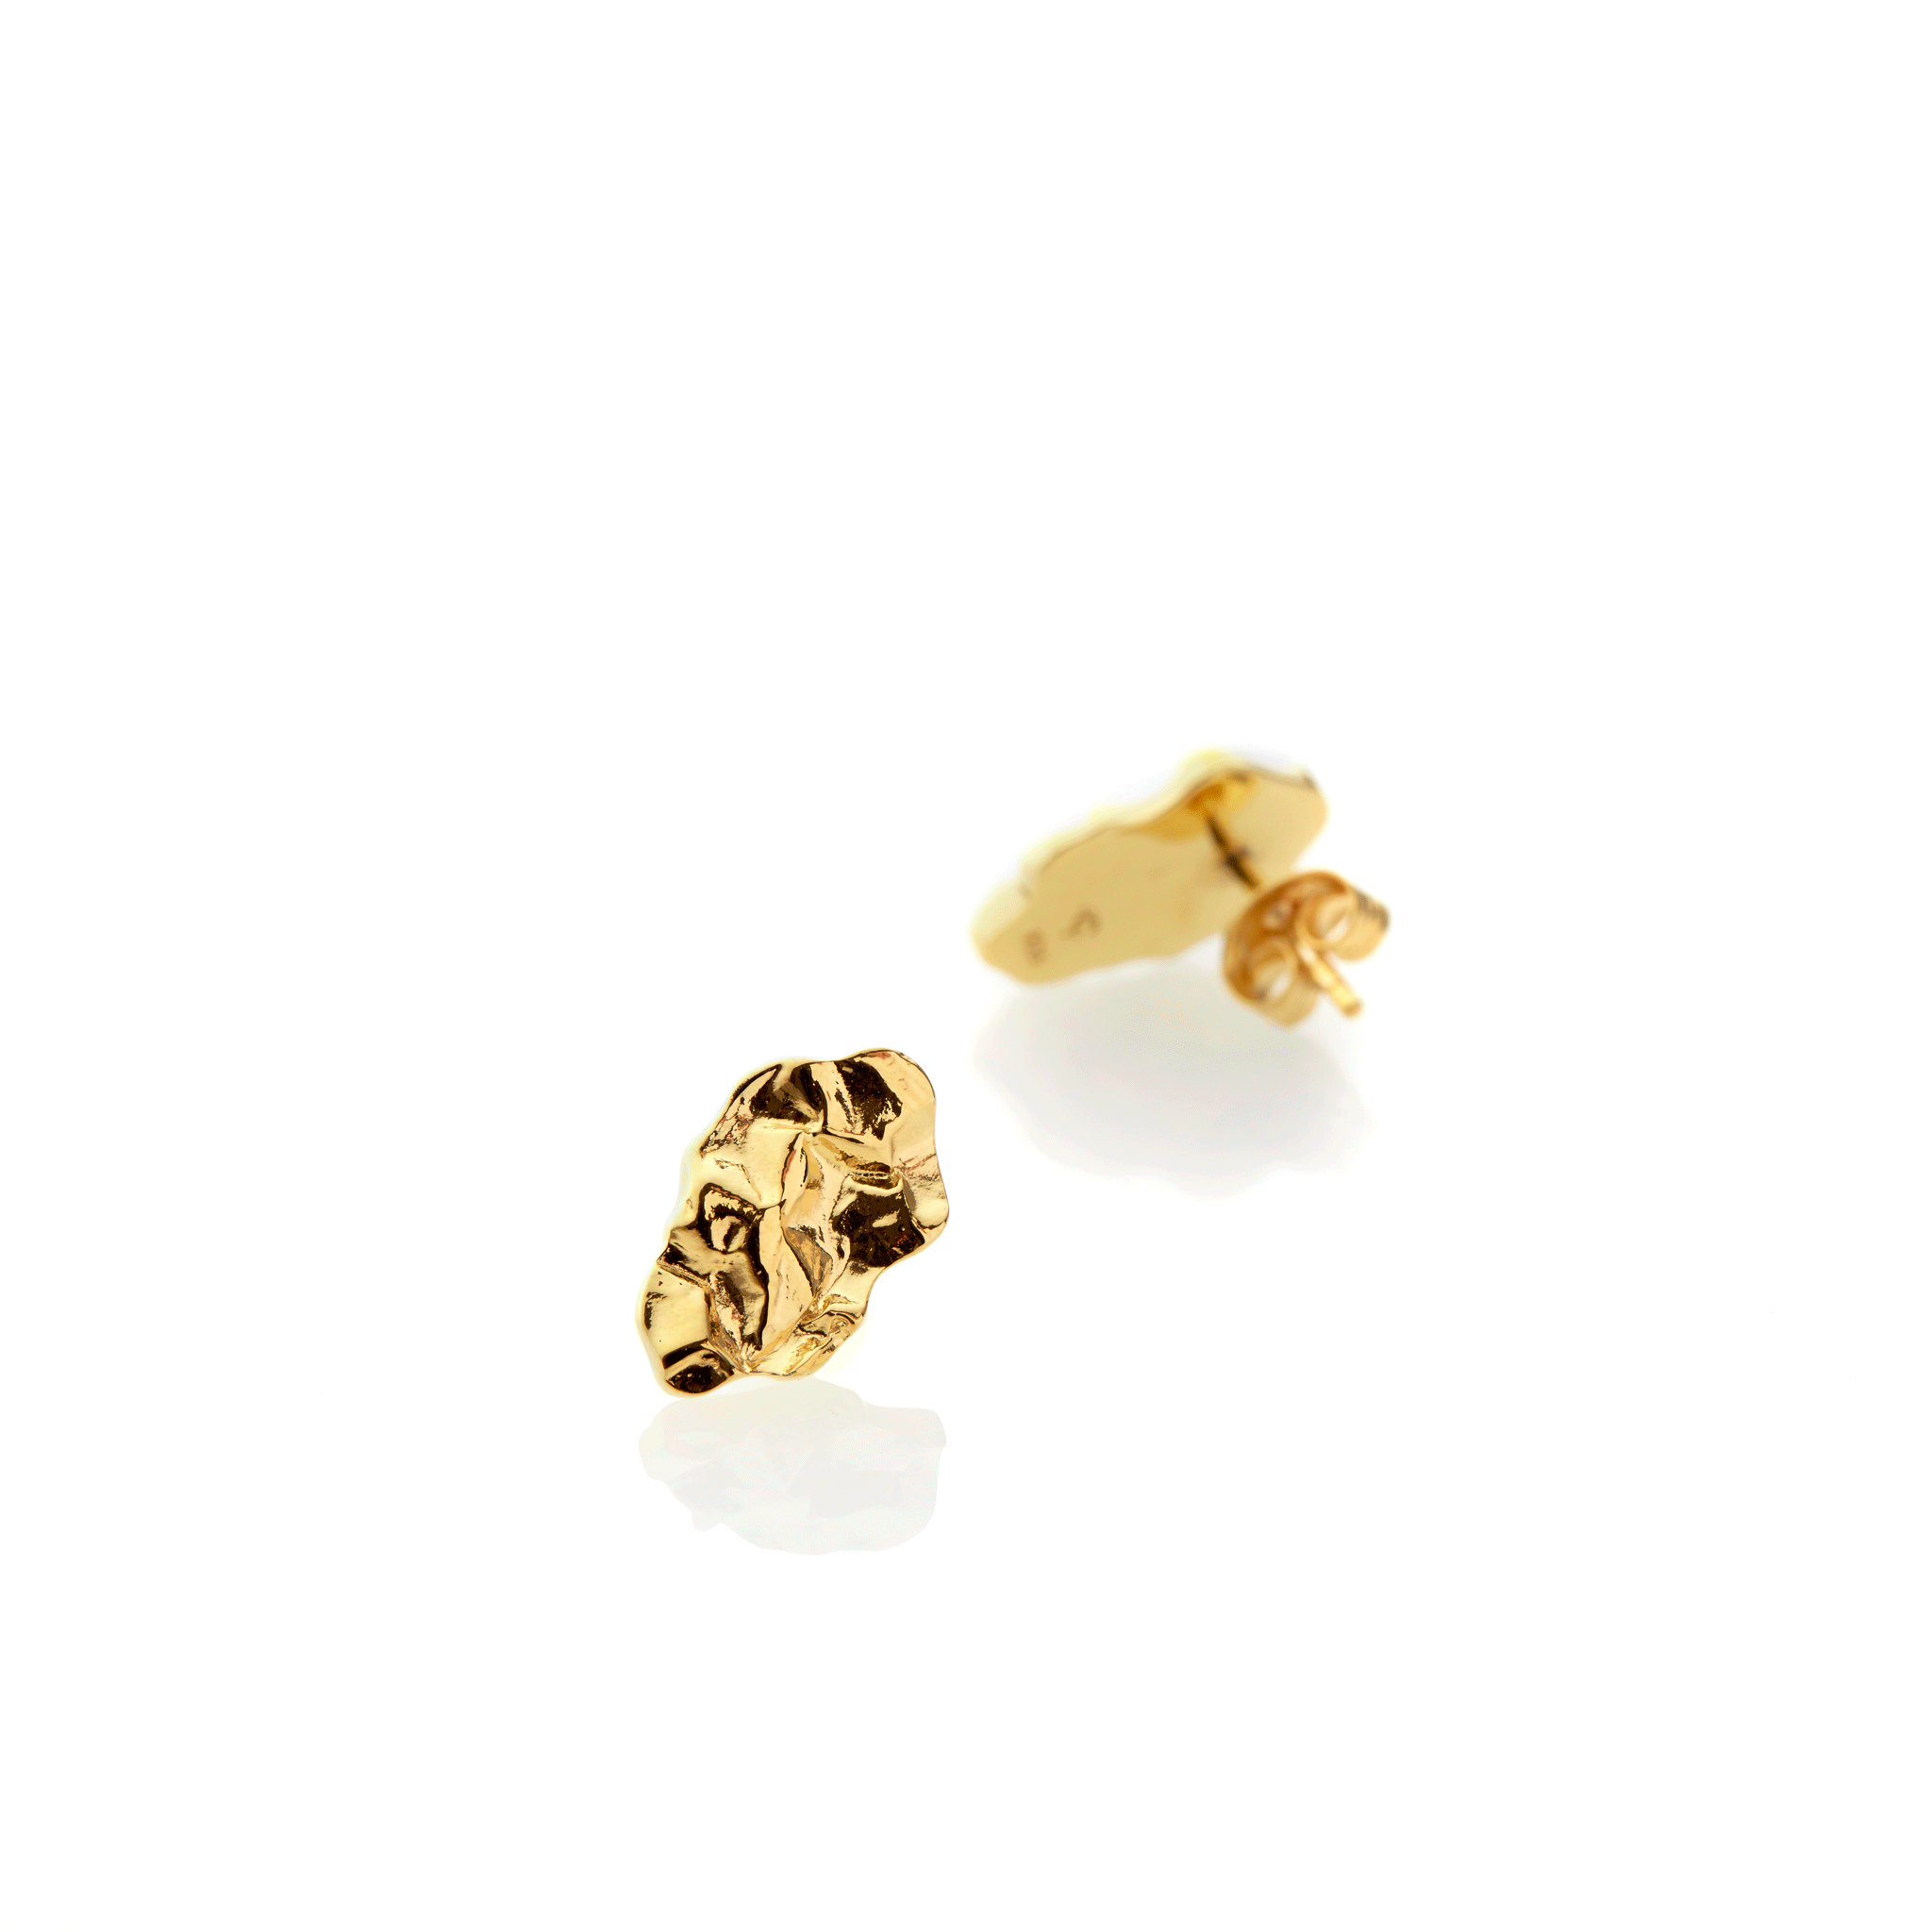 Fragment Earrings small - gold plate - Collectors Items Jewelry